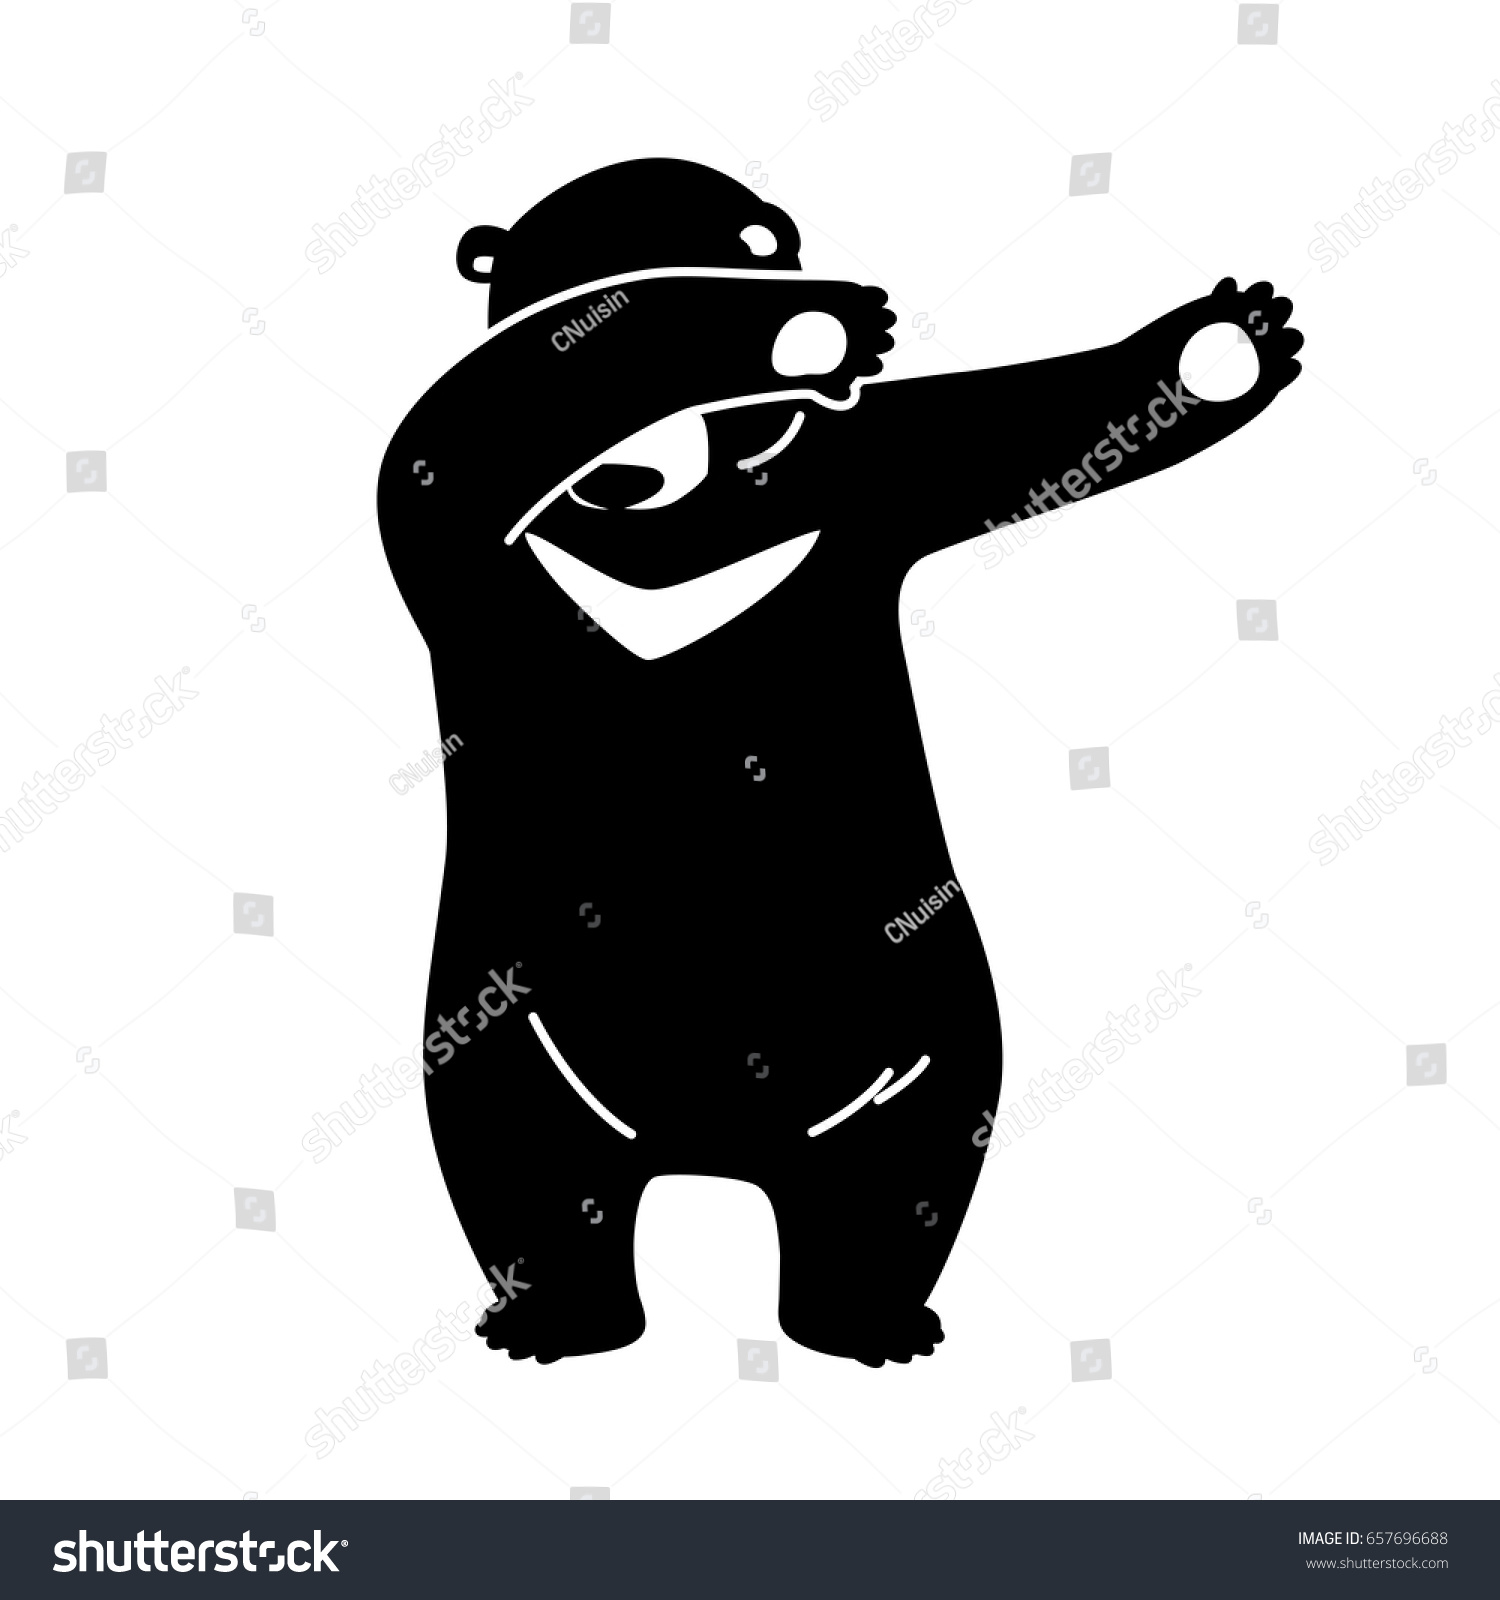 dabb dance. bear polar dab dance vector illustration dabb